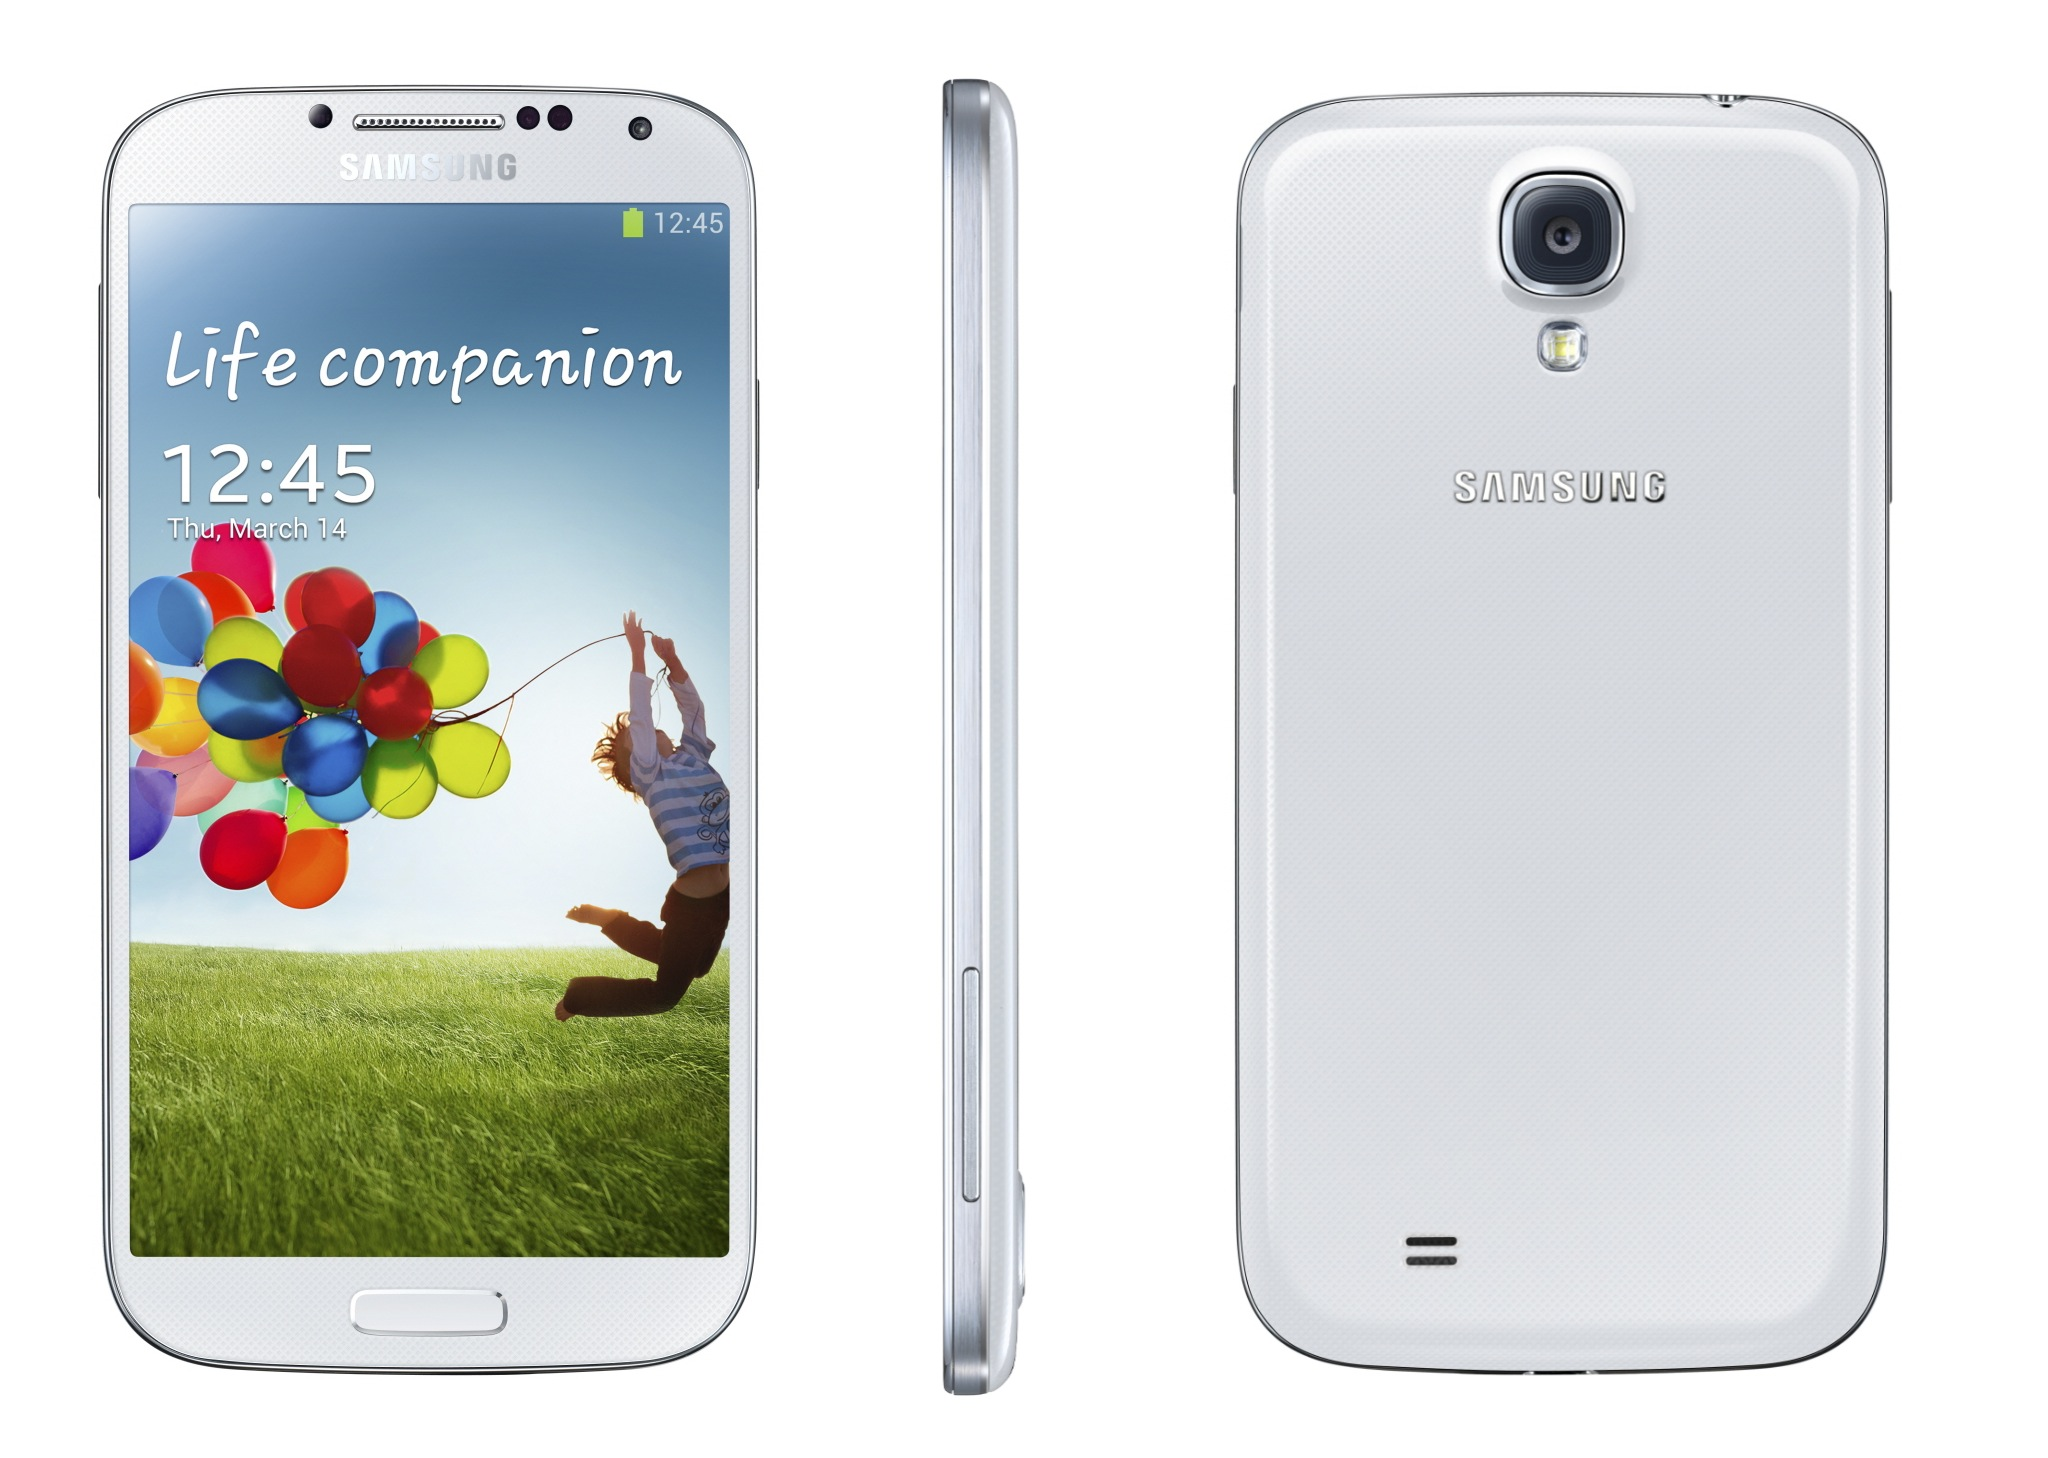 Samsung Galaxy S4: Product Review - Image 1